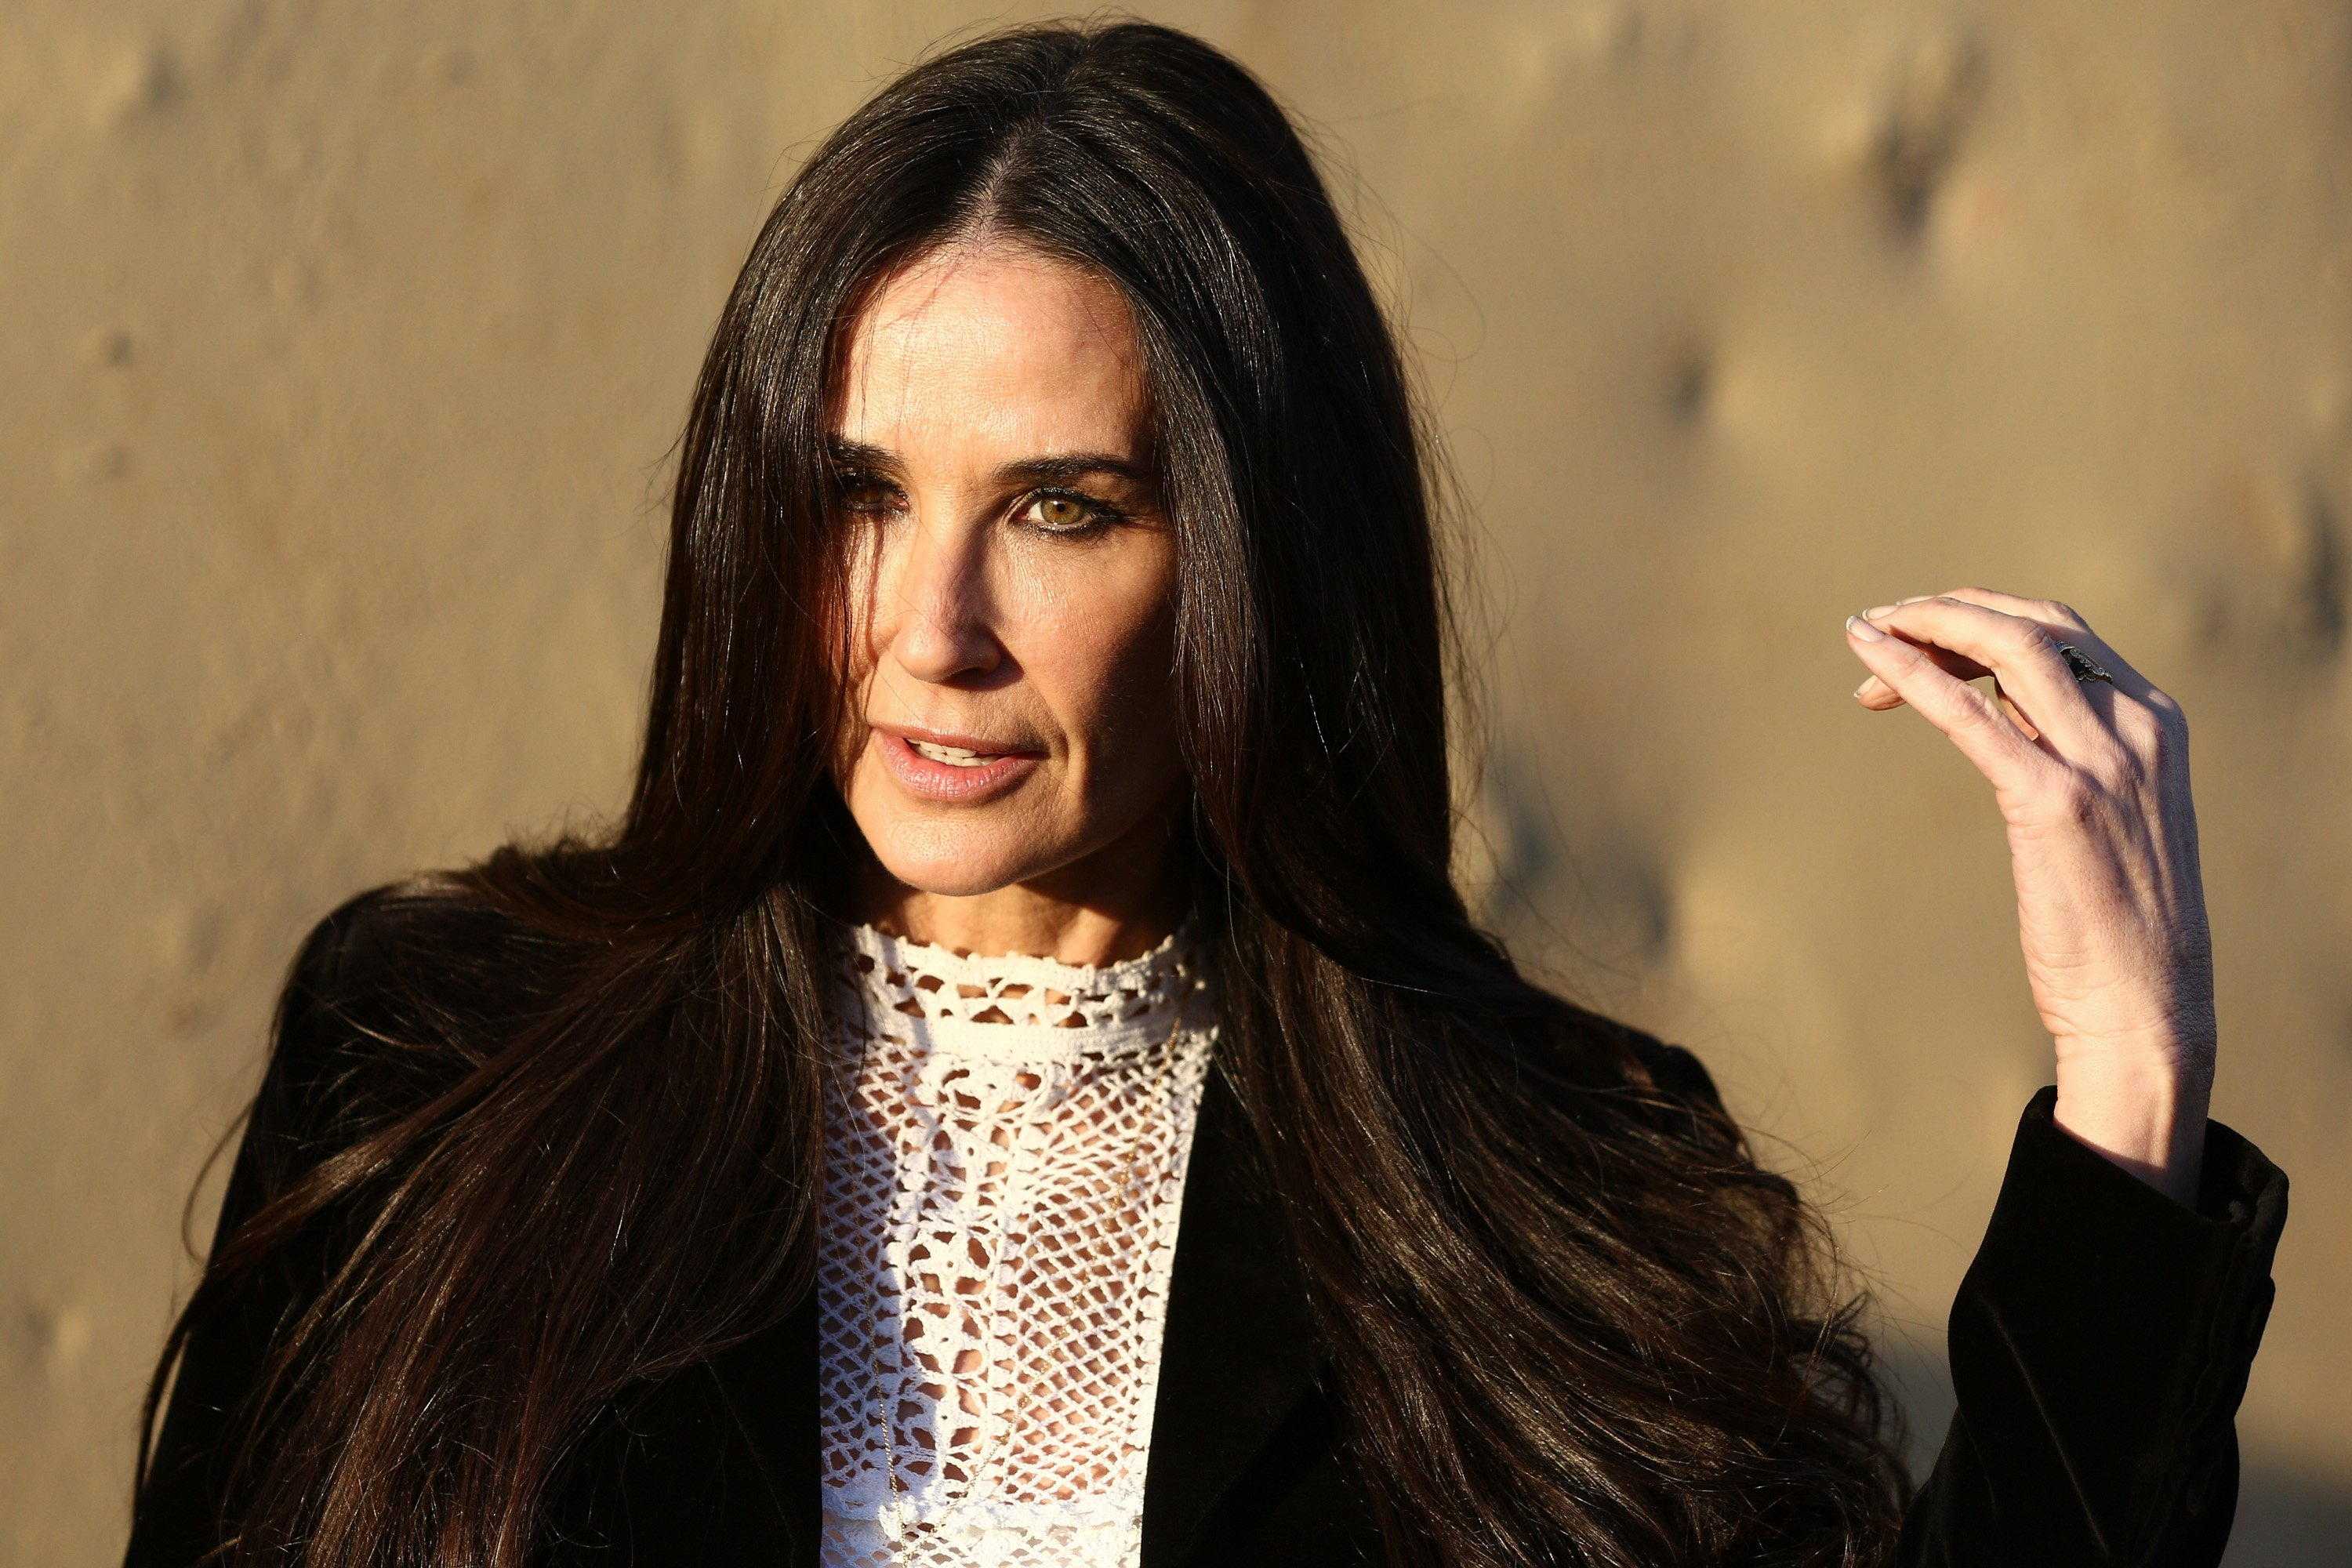 Actress Demi Moore during a 2018 runway show in Santa Monica, California. | Photo: Getty Images